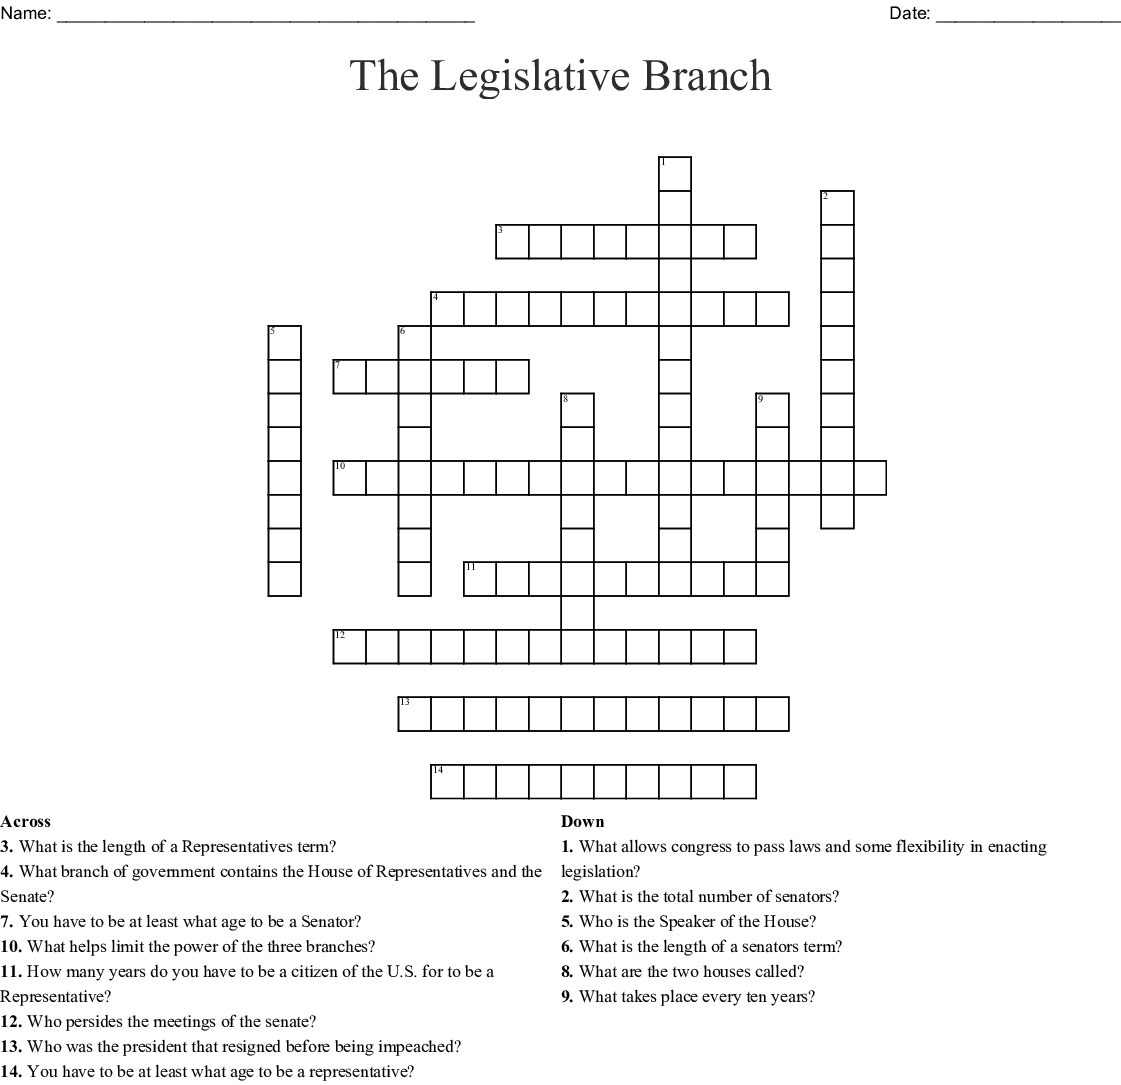 Article 1 The Legislative Branch Worksheet Answers